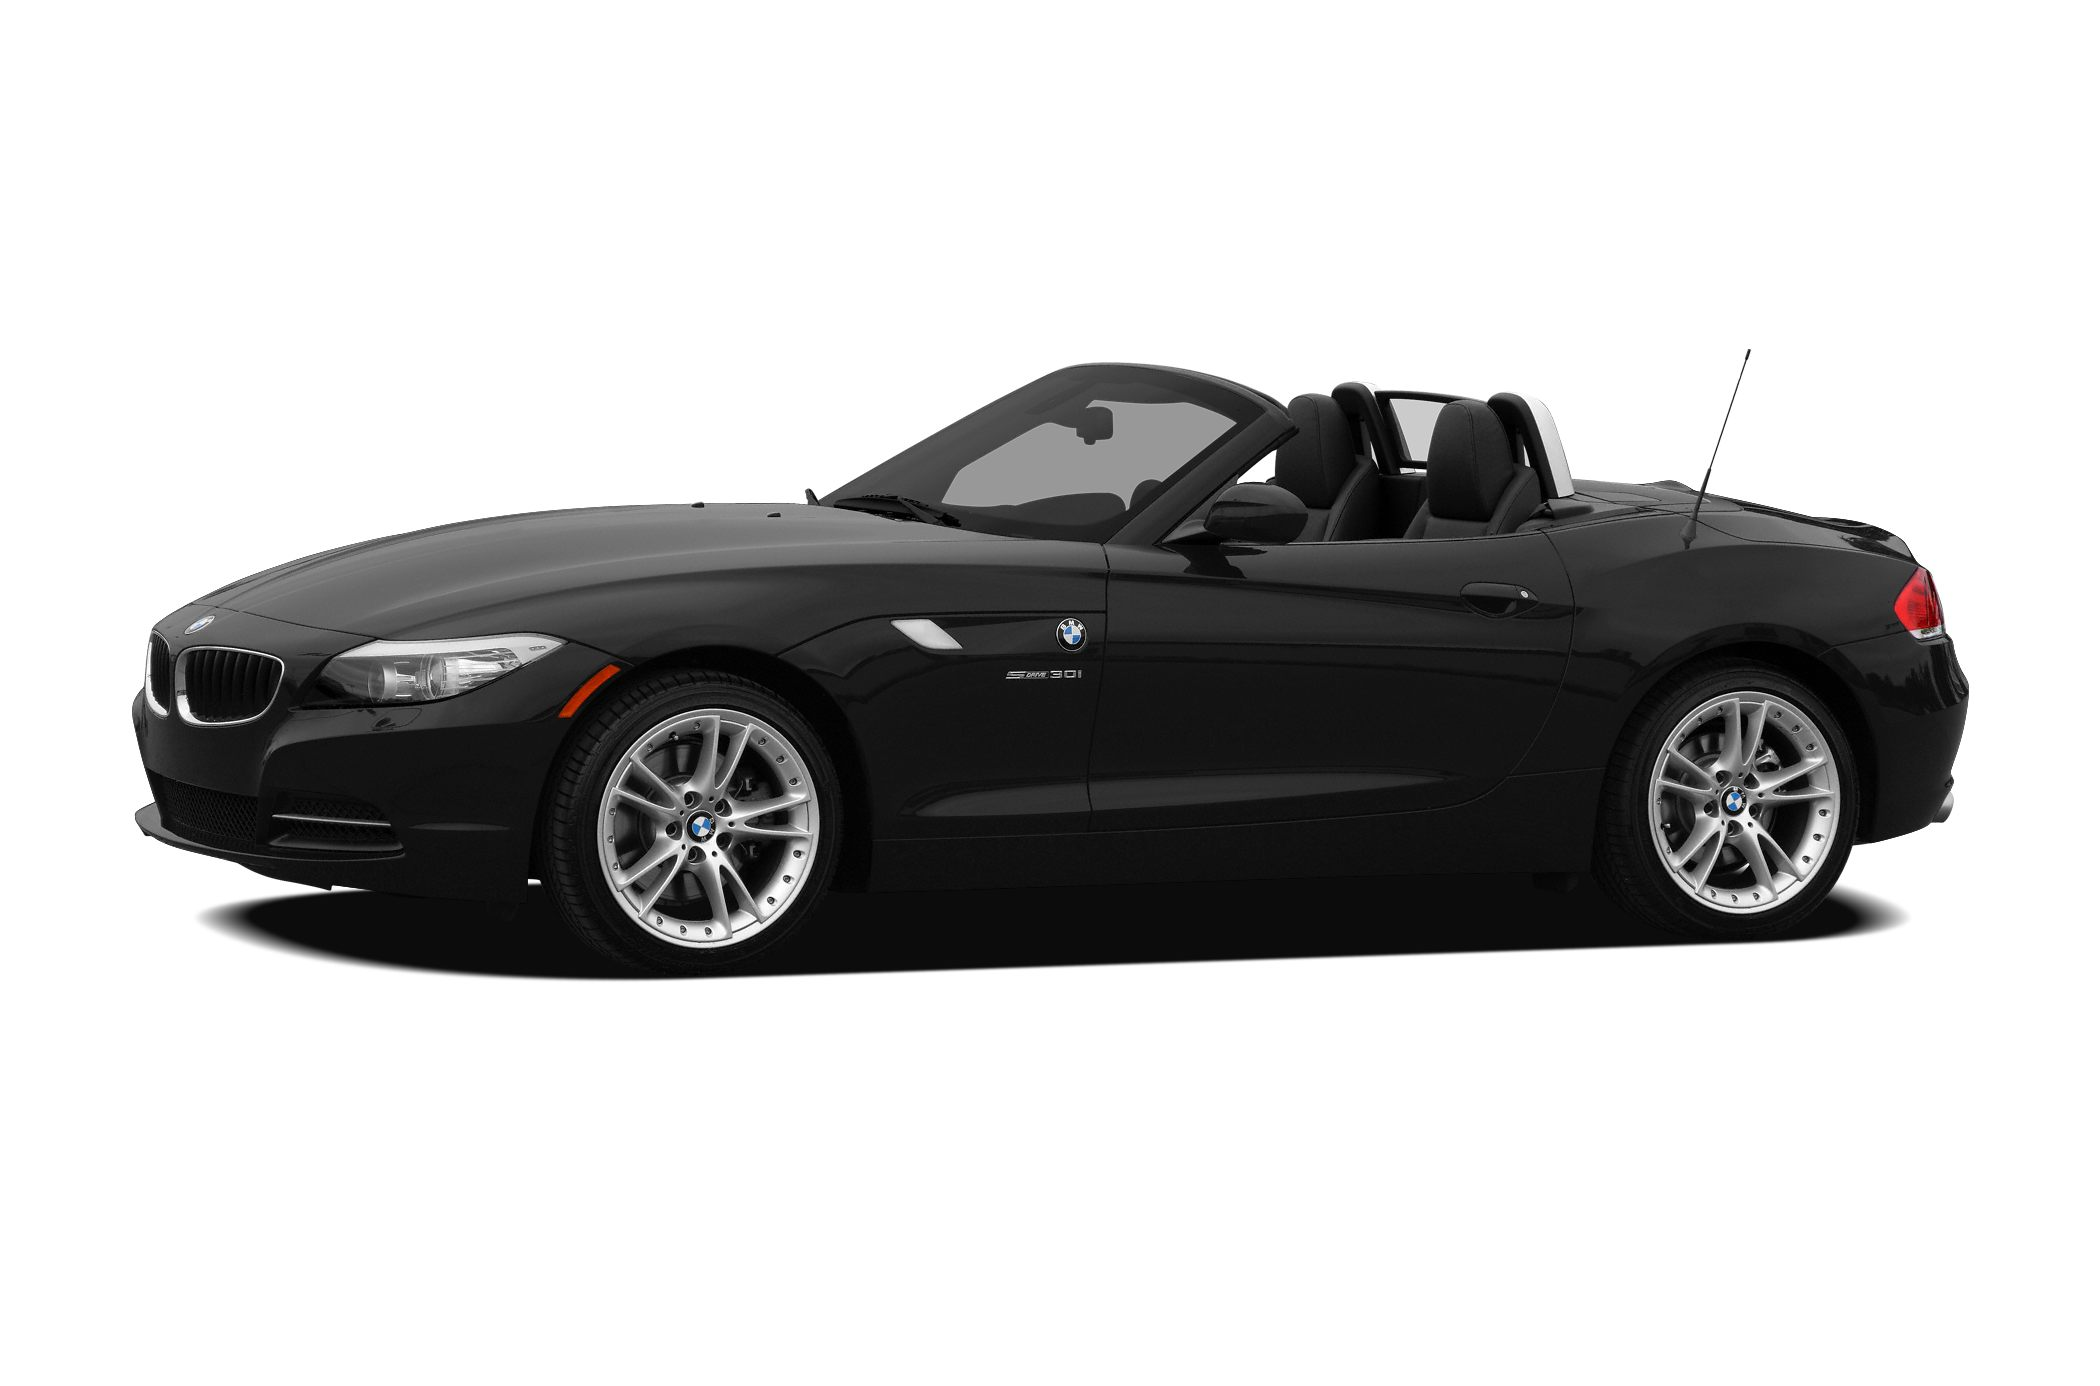 2009 Bmw Z4 Sdrive30i 2dr Rear Wheel Drive Roadster Pricing And Options